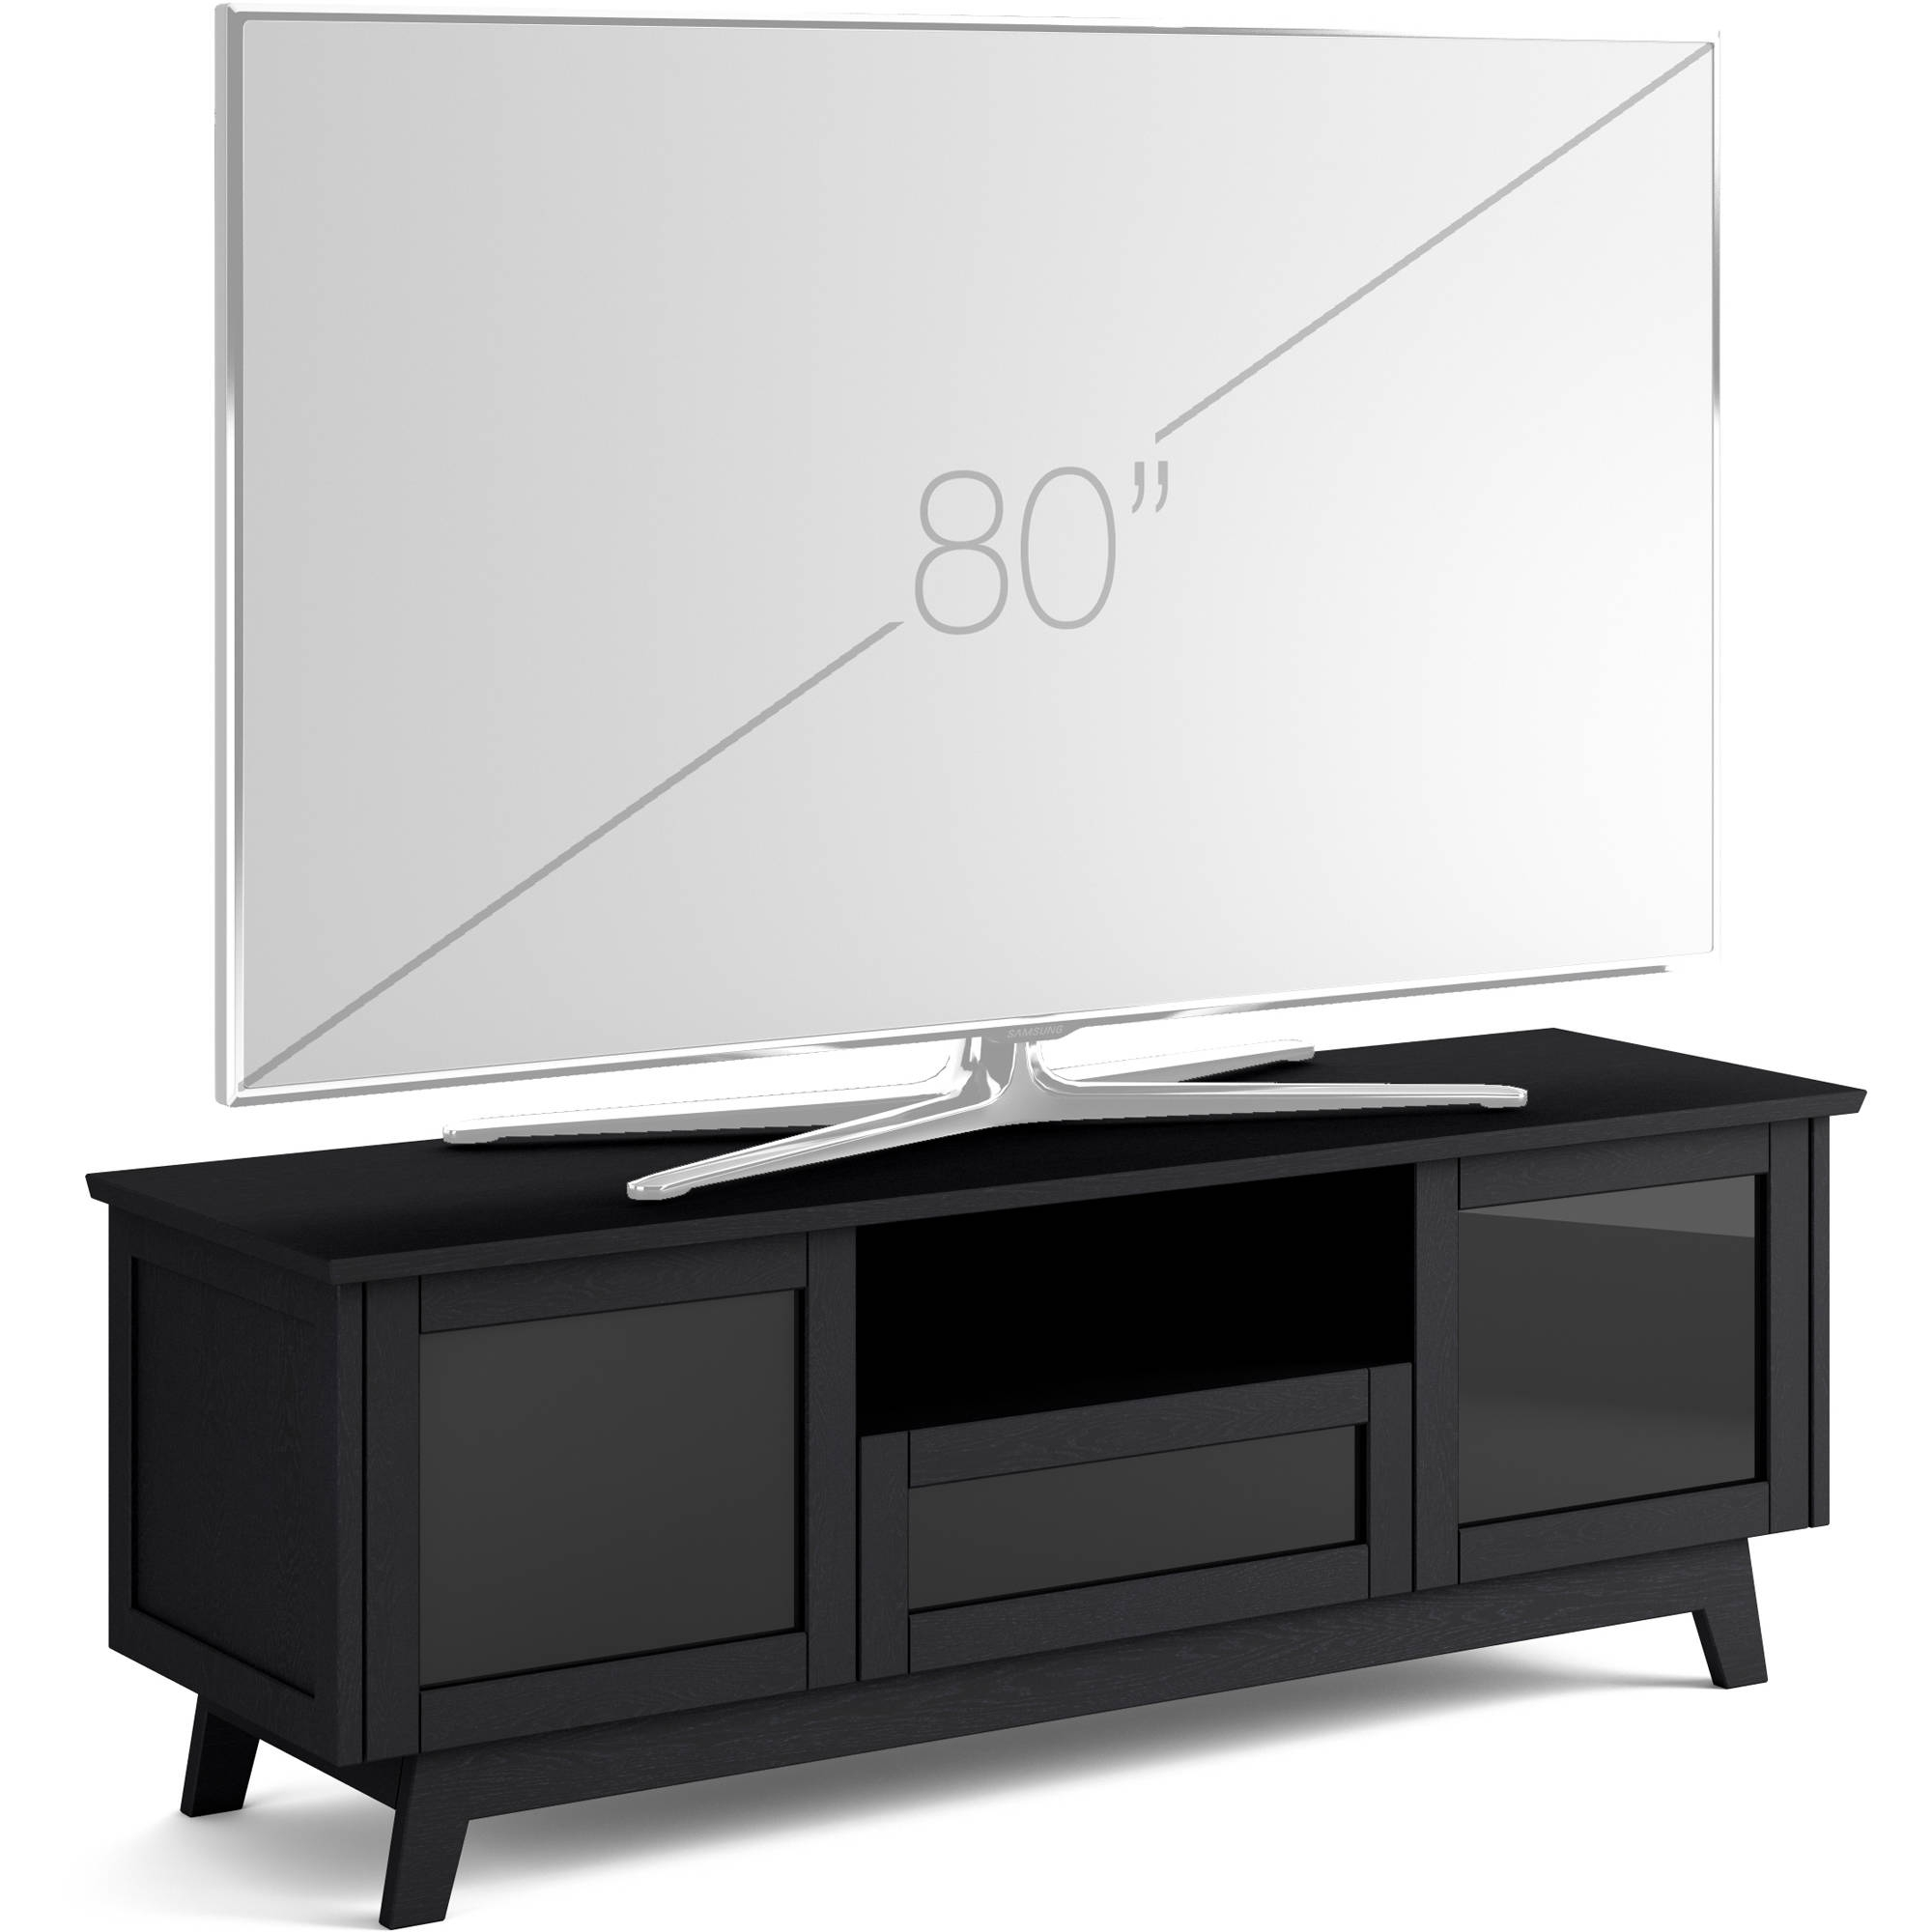 Salamander Designs Audio/video Cabinet In Black Sdav5/7225/bo within Solar Refinement Sideboards (Image 19 of 30)